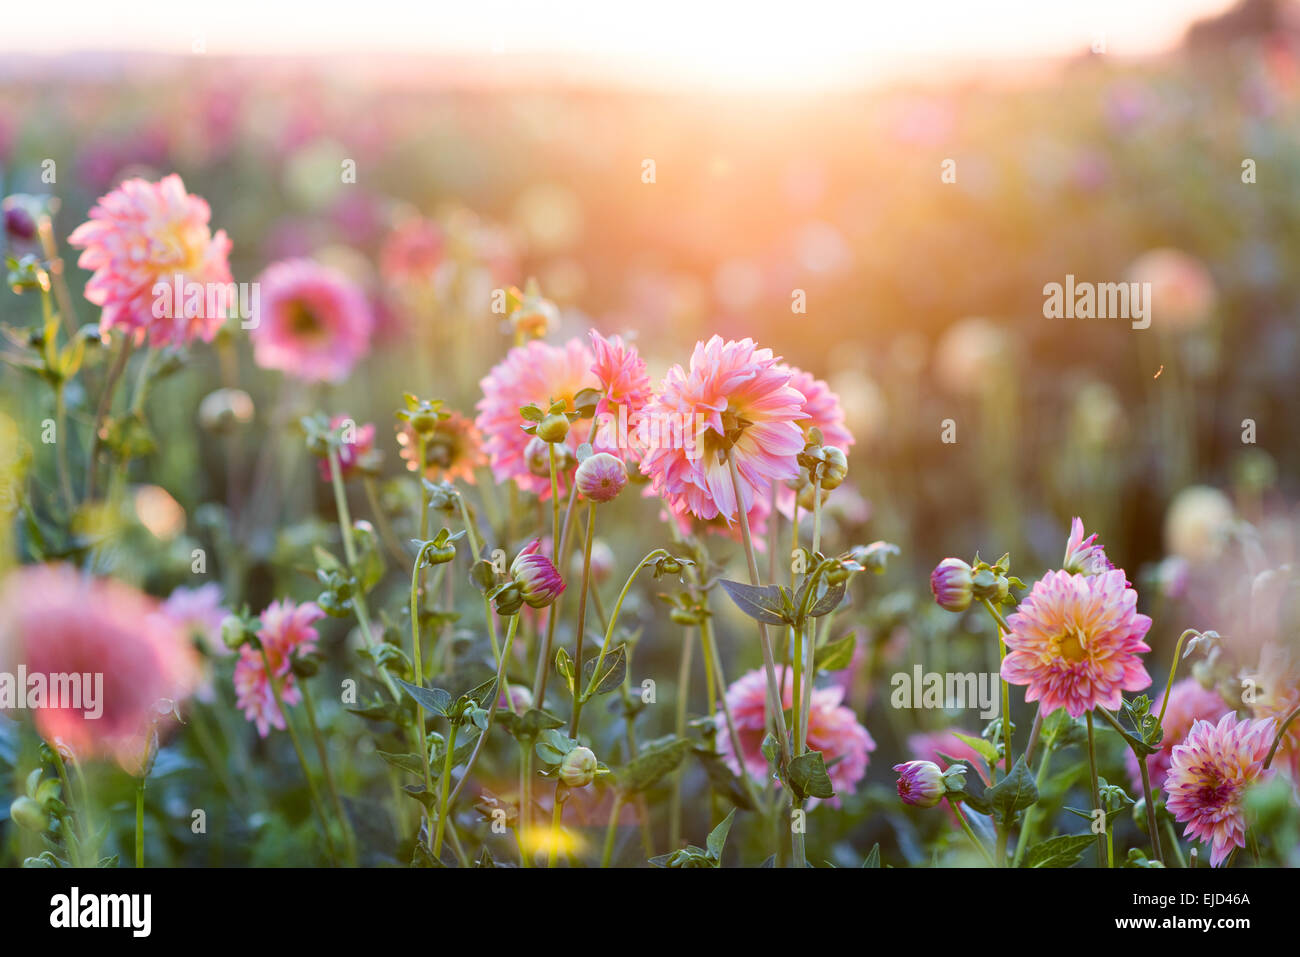 Dahlias growing in field with sunset behind in late summer - Stock Image